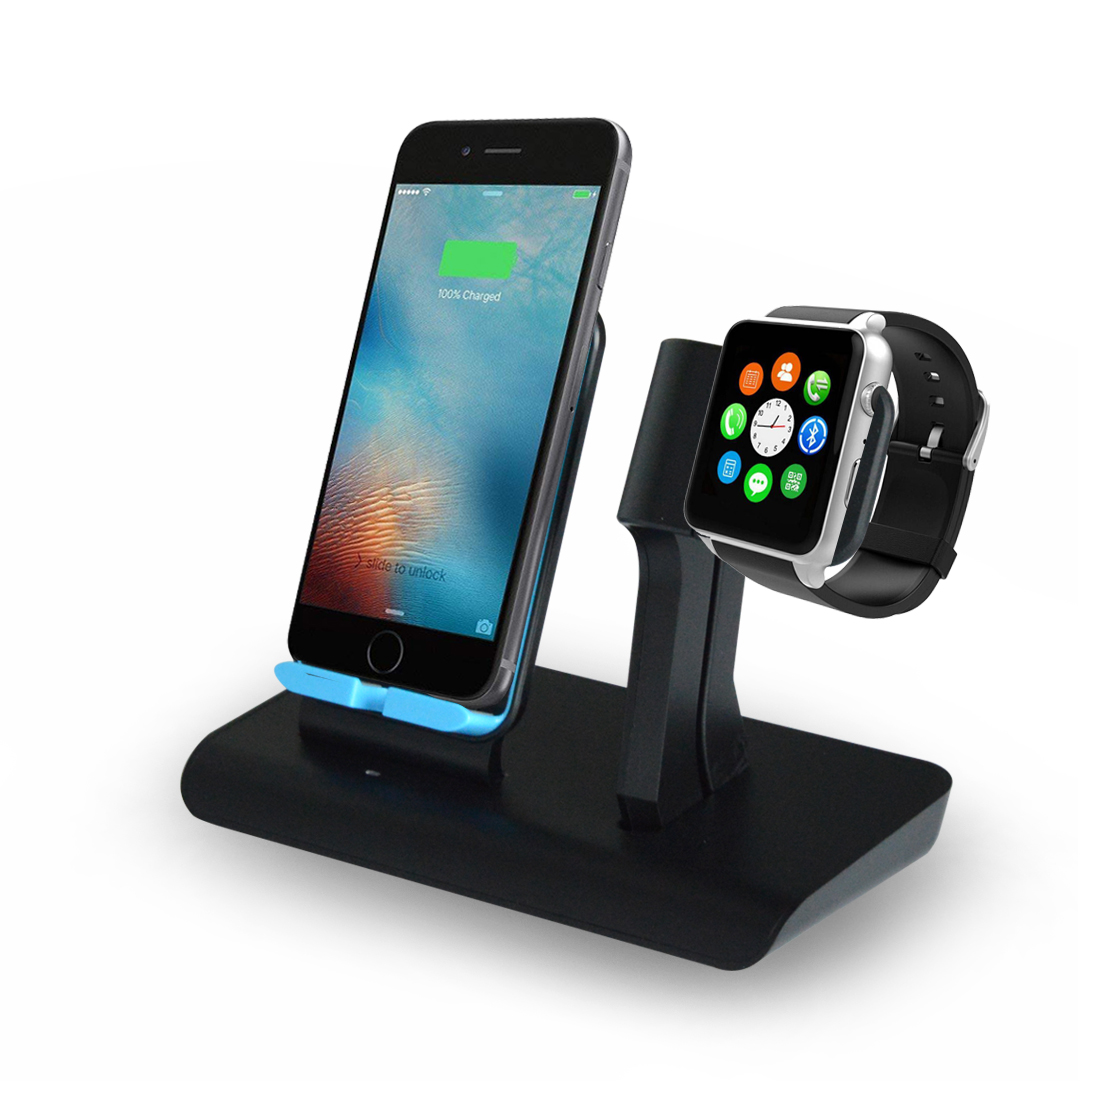 newest 1f84a 9491c 2 IN 1 Wireless Fast Charger Charging Pad Stand - iWatch Charging Holder  for Apple Watch Series 4/3/2/1 - Nightlight Mode Available, Qi Wireless ...